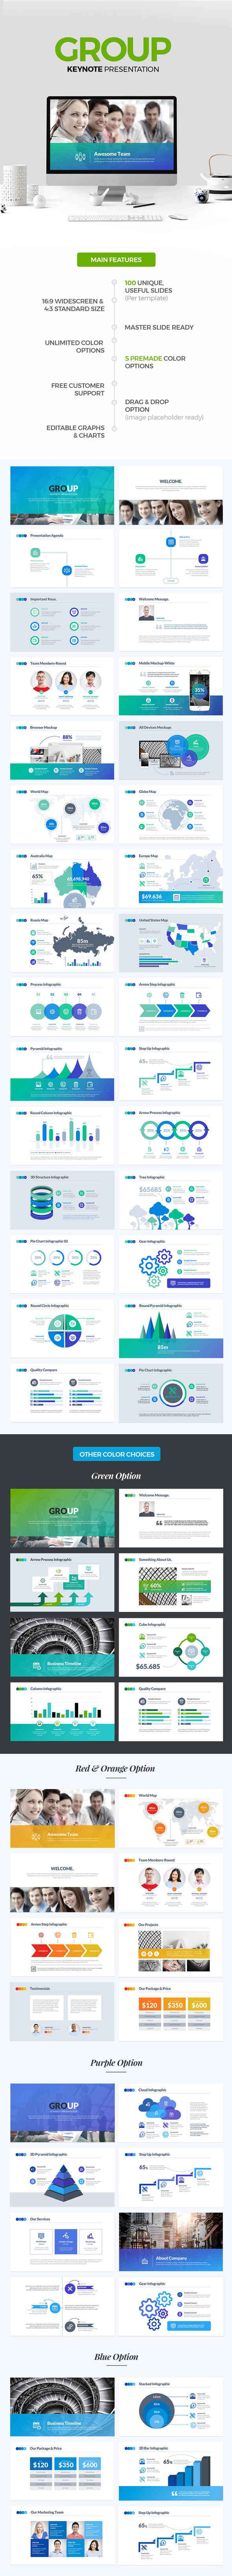 GraphicRiver Group Keynote Template 20820740